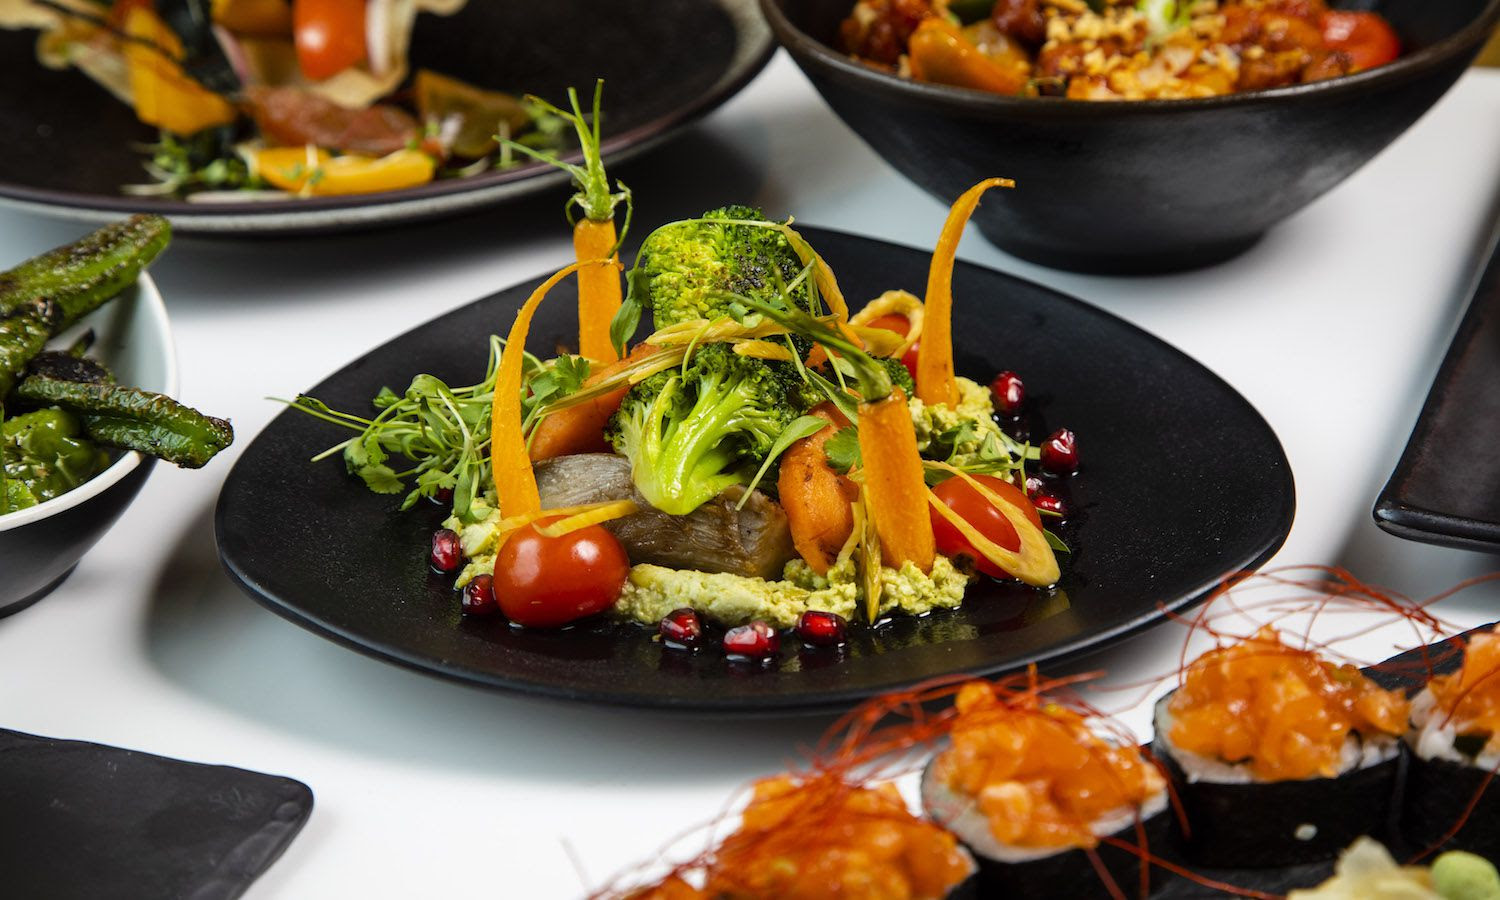 Save 62% on unlimited food and prosecco at Inamo